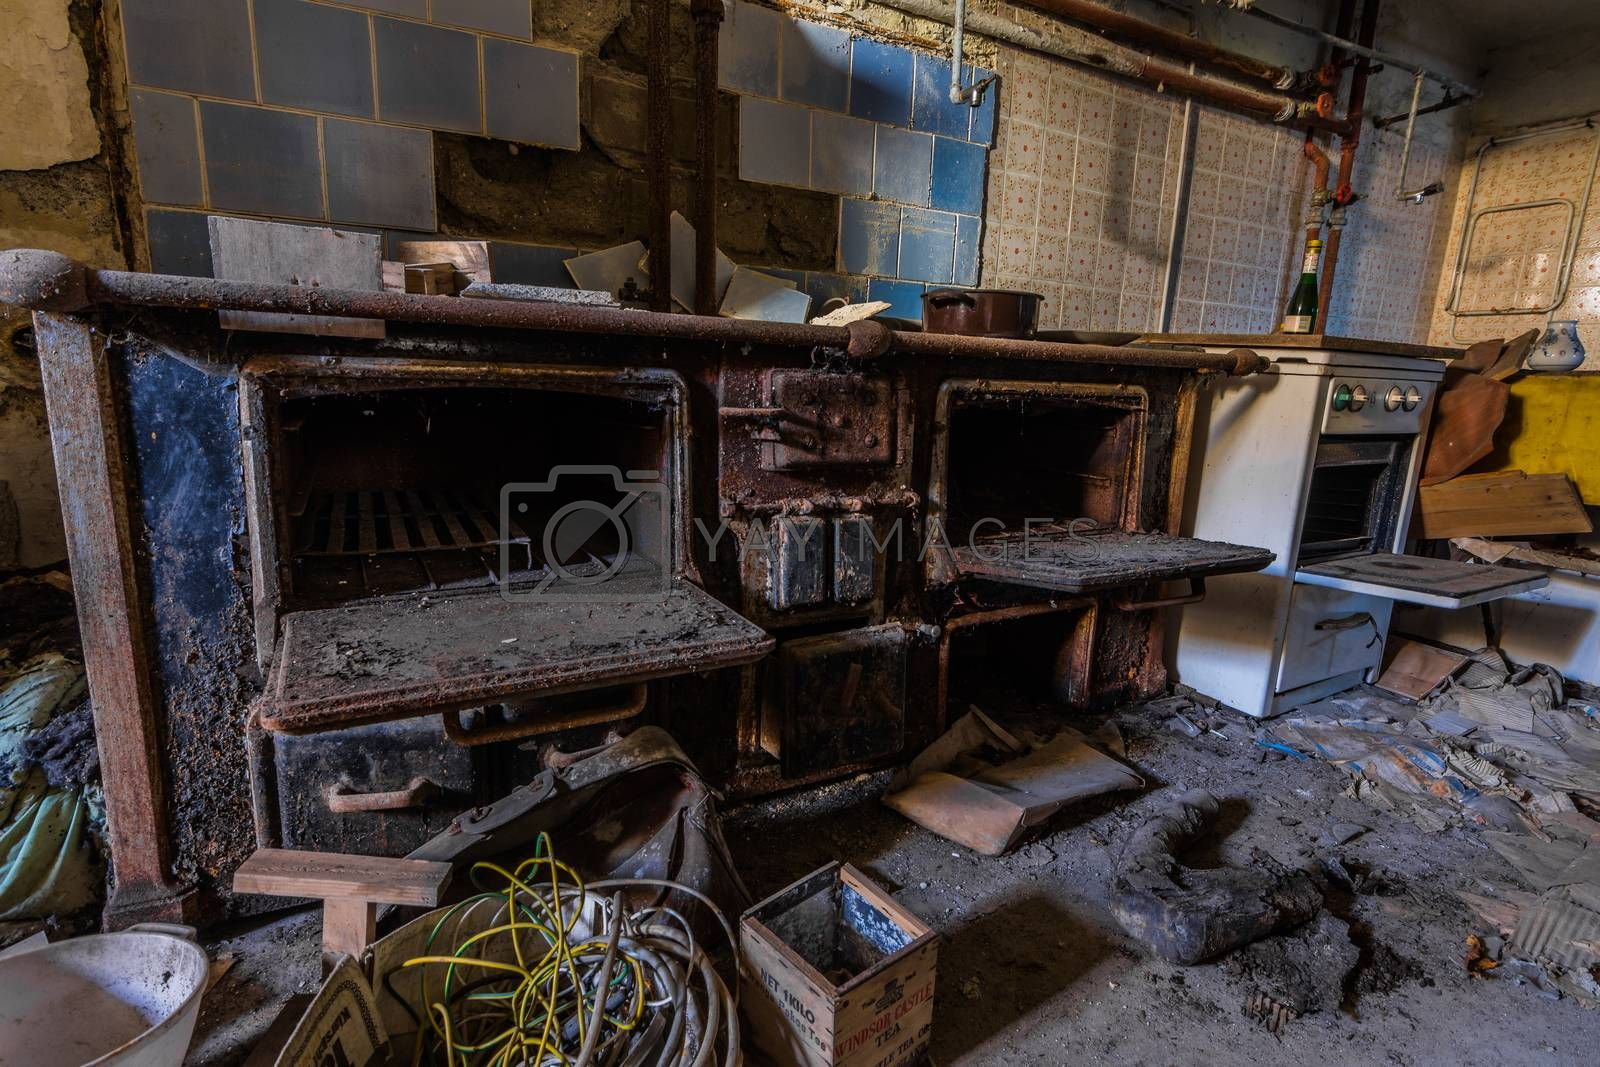 large rusty oven in an abandoned hotel kitchen